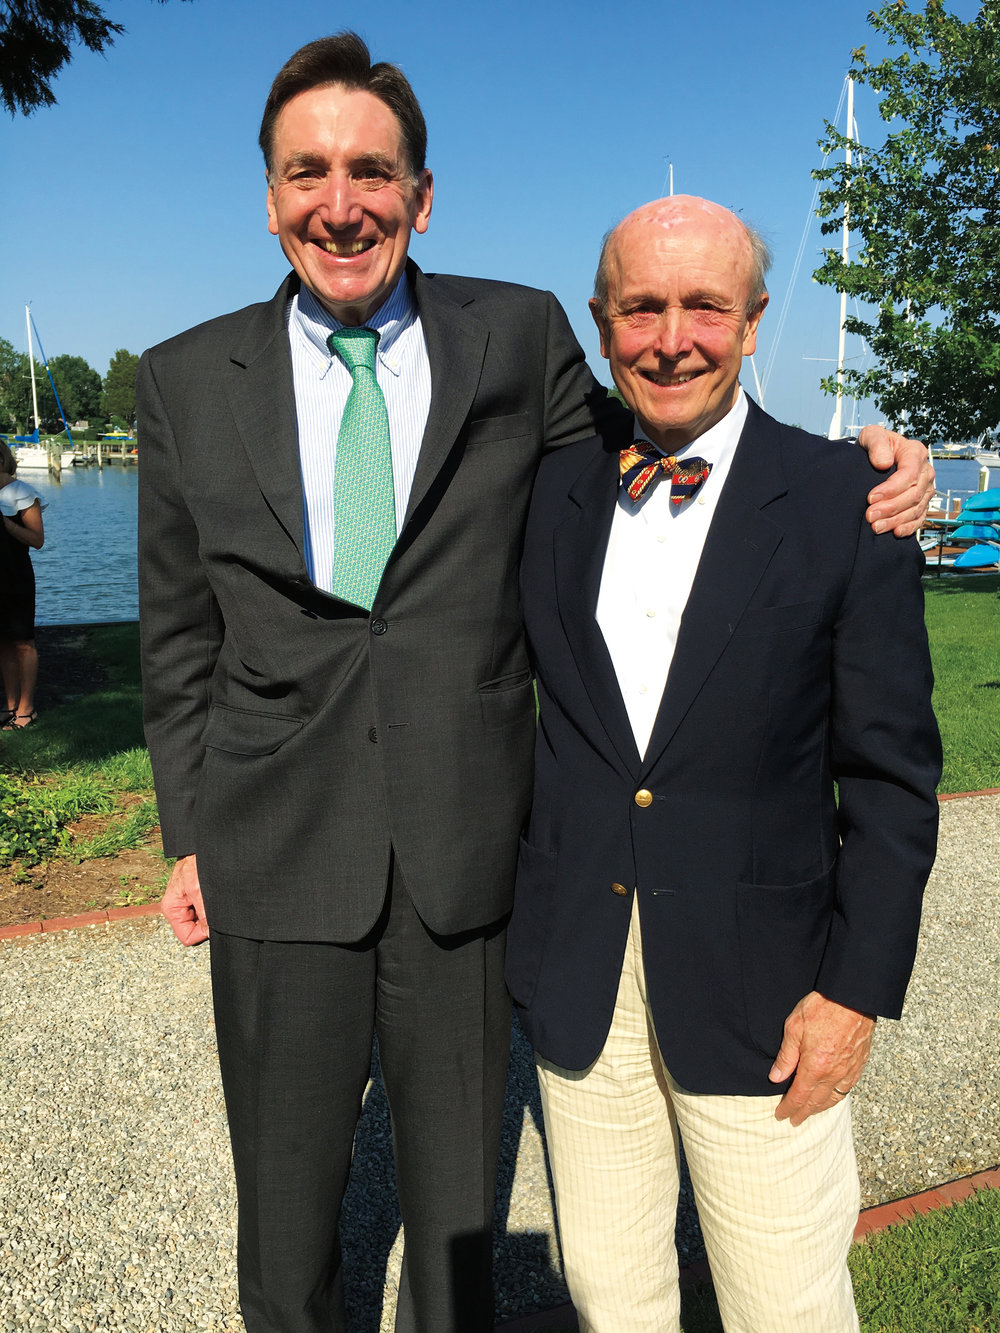 Tony Schall '62 (l.) and Lloyd Macdonald '62 at a mutual friend's wedding in Maryland, where Tony was the officiant.